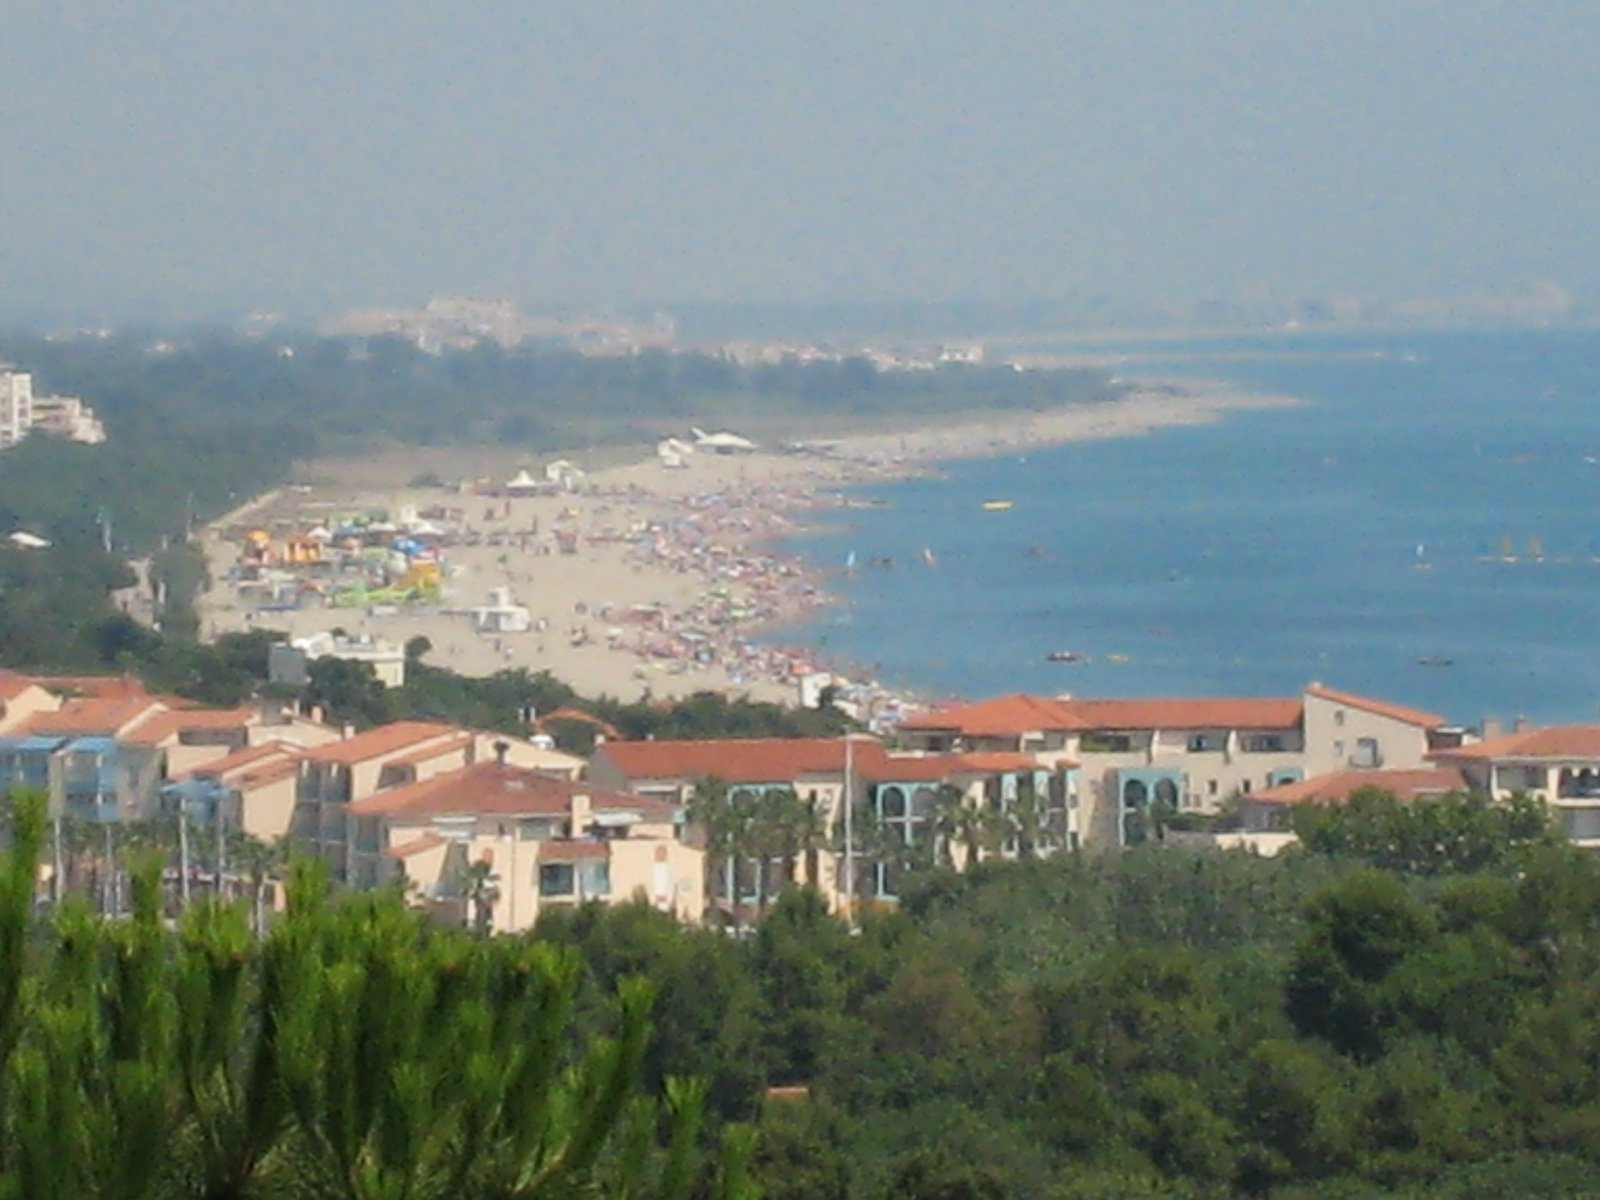 Vente agence mailly immobilier - Office tourisme argeles sur mer 66700 ...